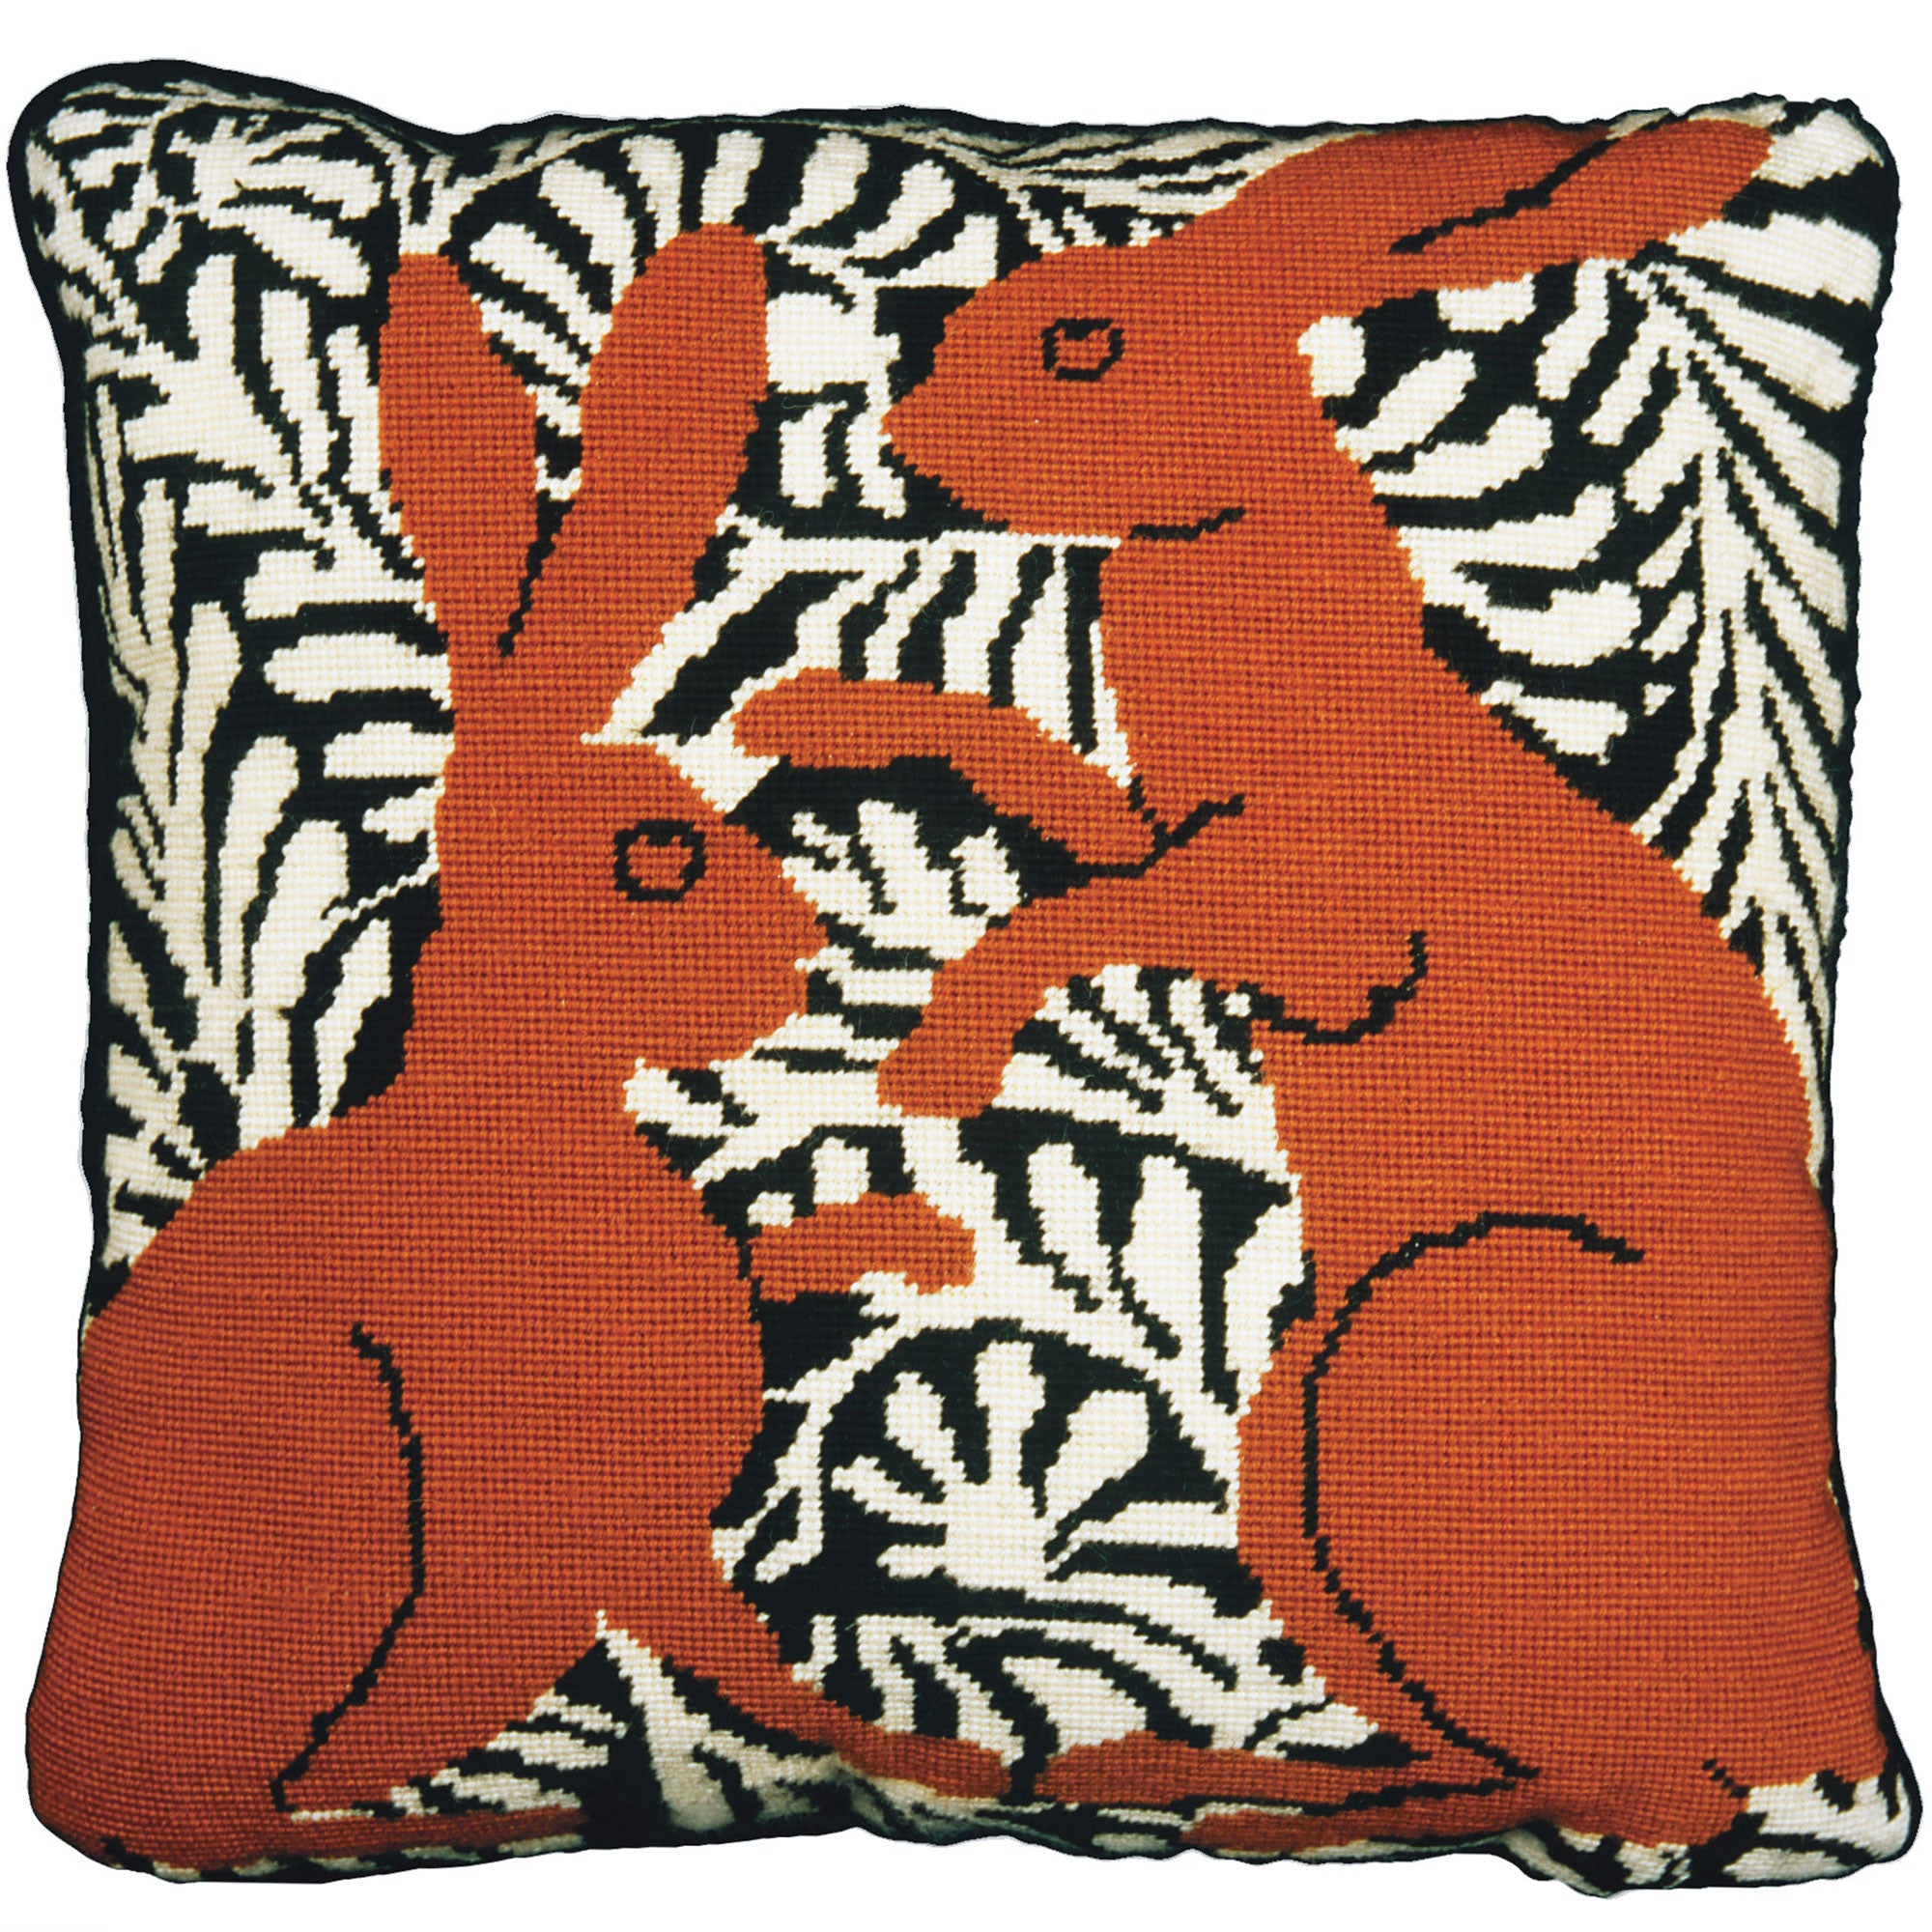 Fine Cell Work De Morgan Boxing Hares Needlepoint Cushion Kit Brown